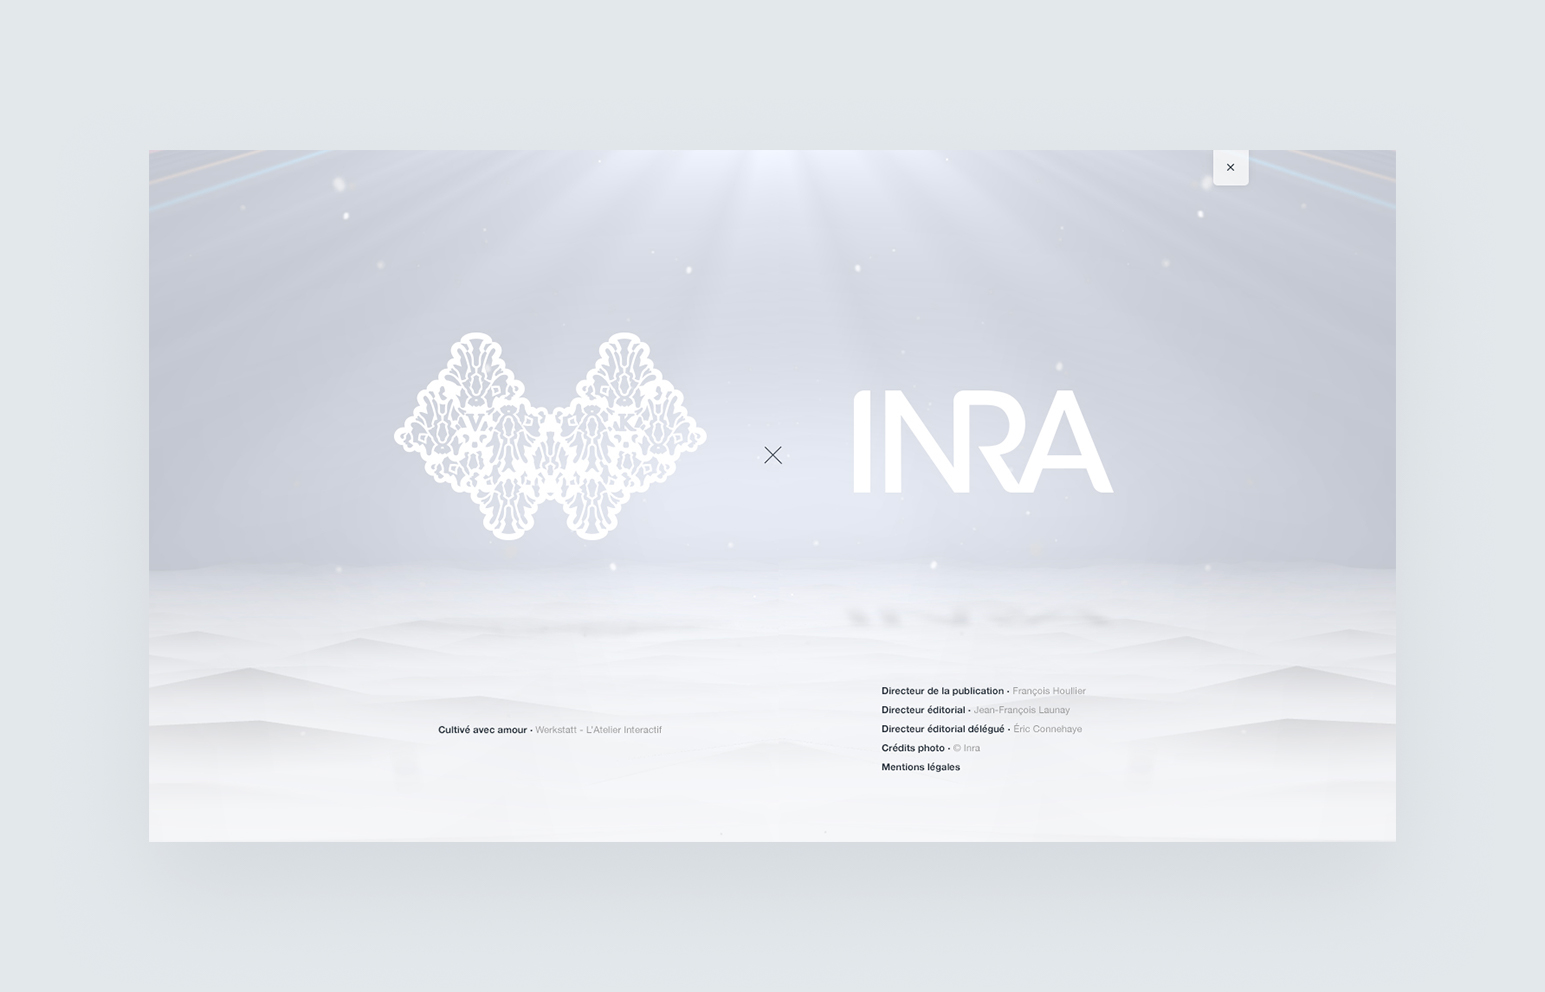 inra-screen-03-V2